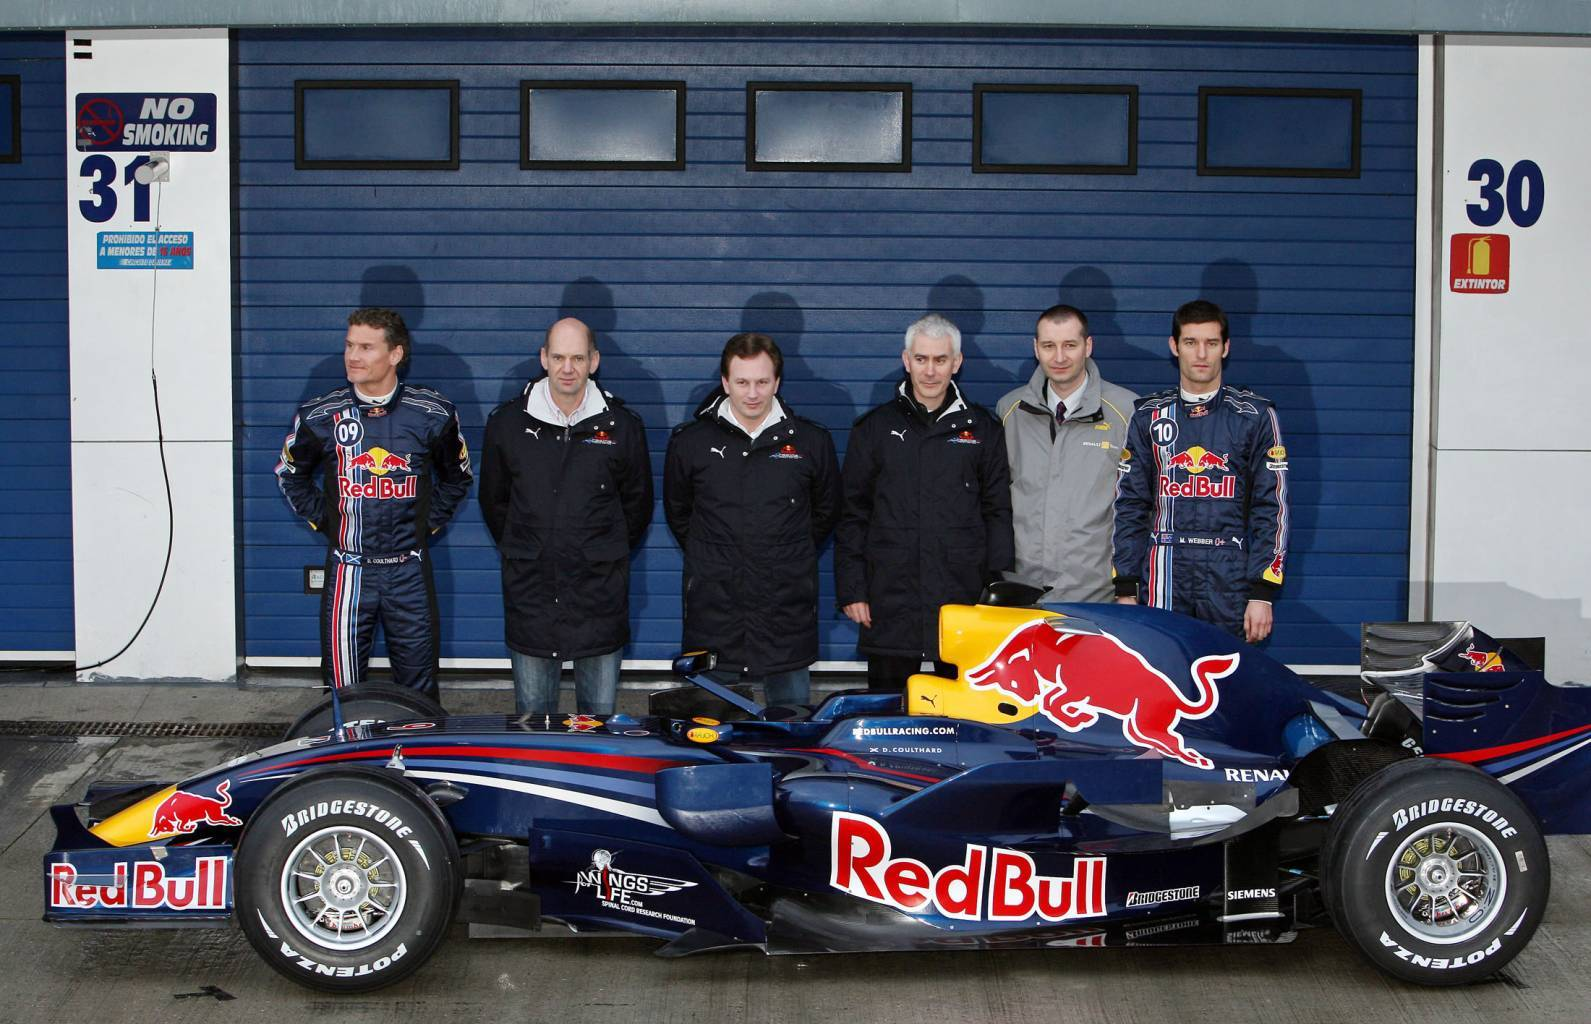 Red bull rb4 photo - 1